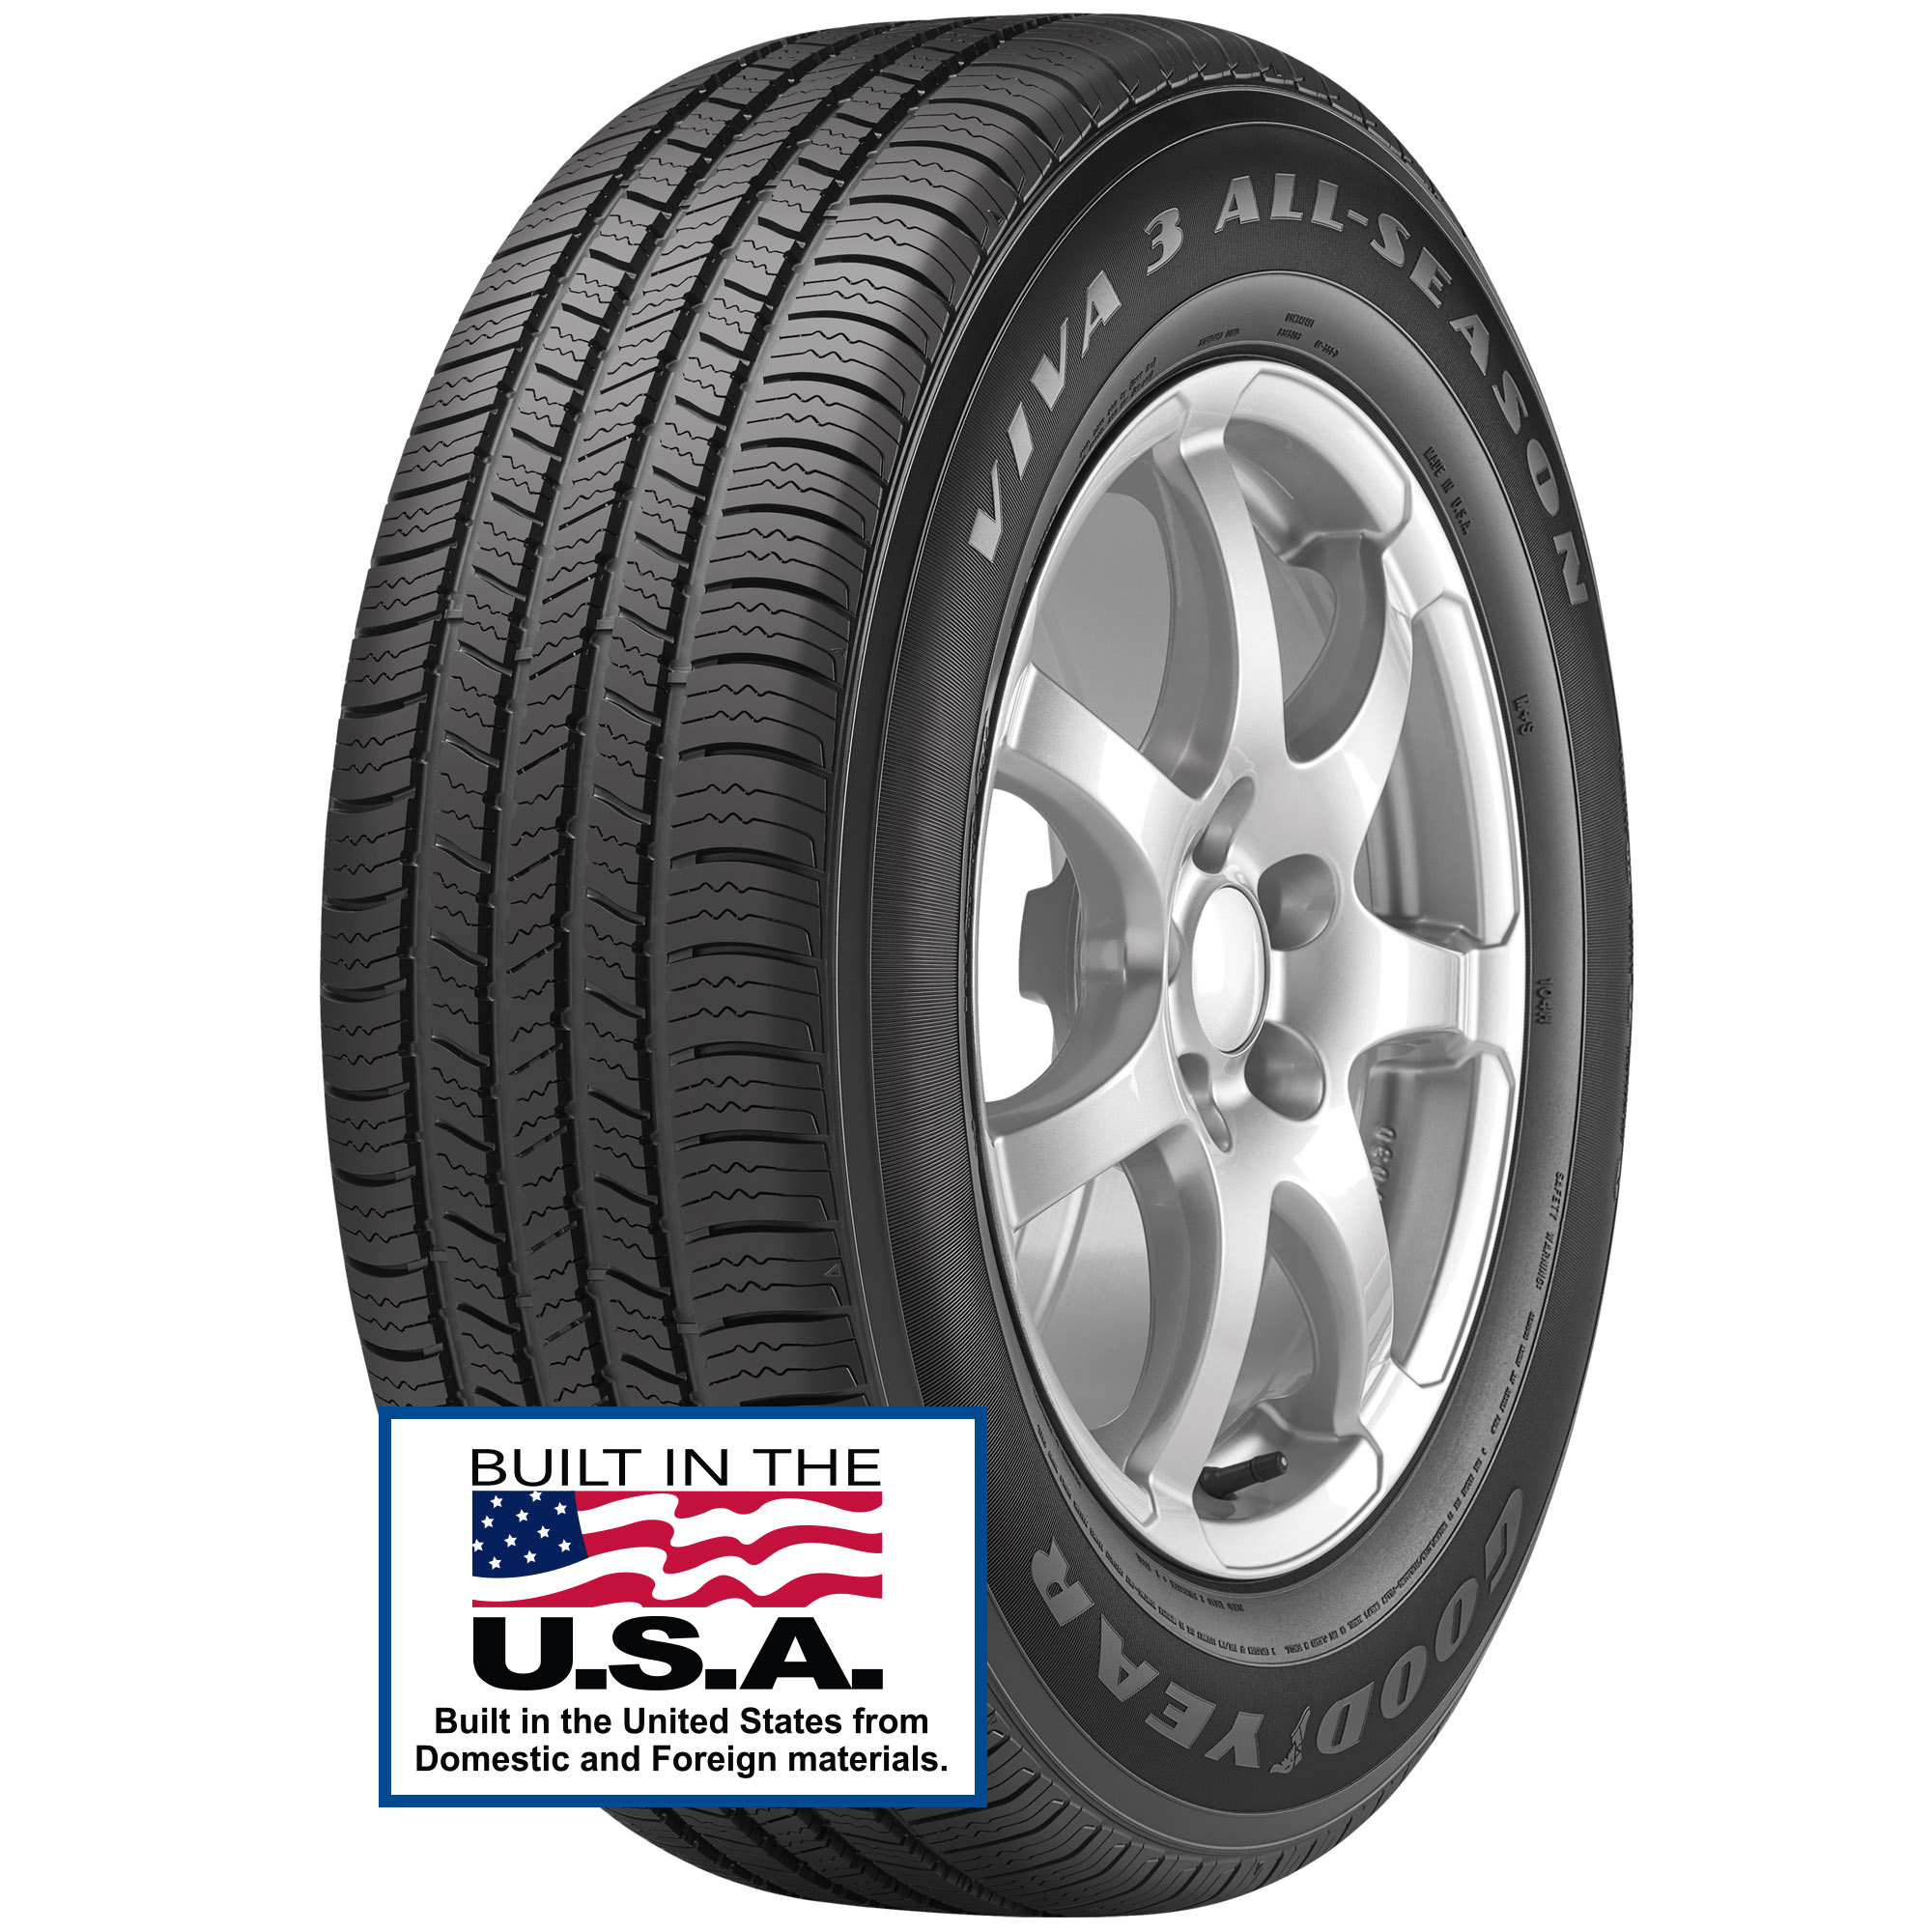 Goodyear Viva 3 All-Season Tire 215/65R17 99T